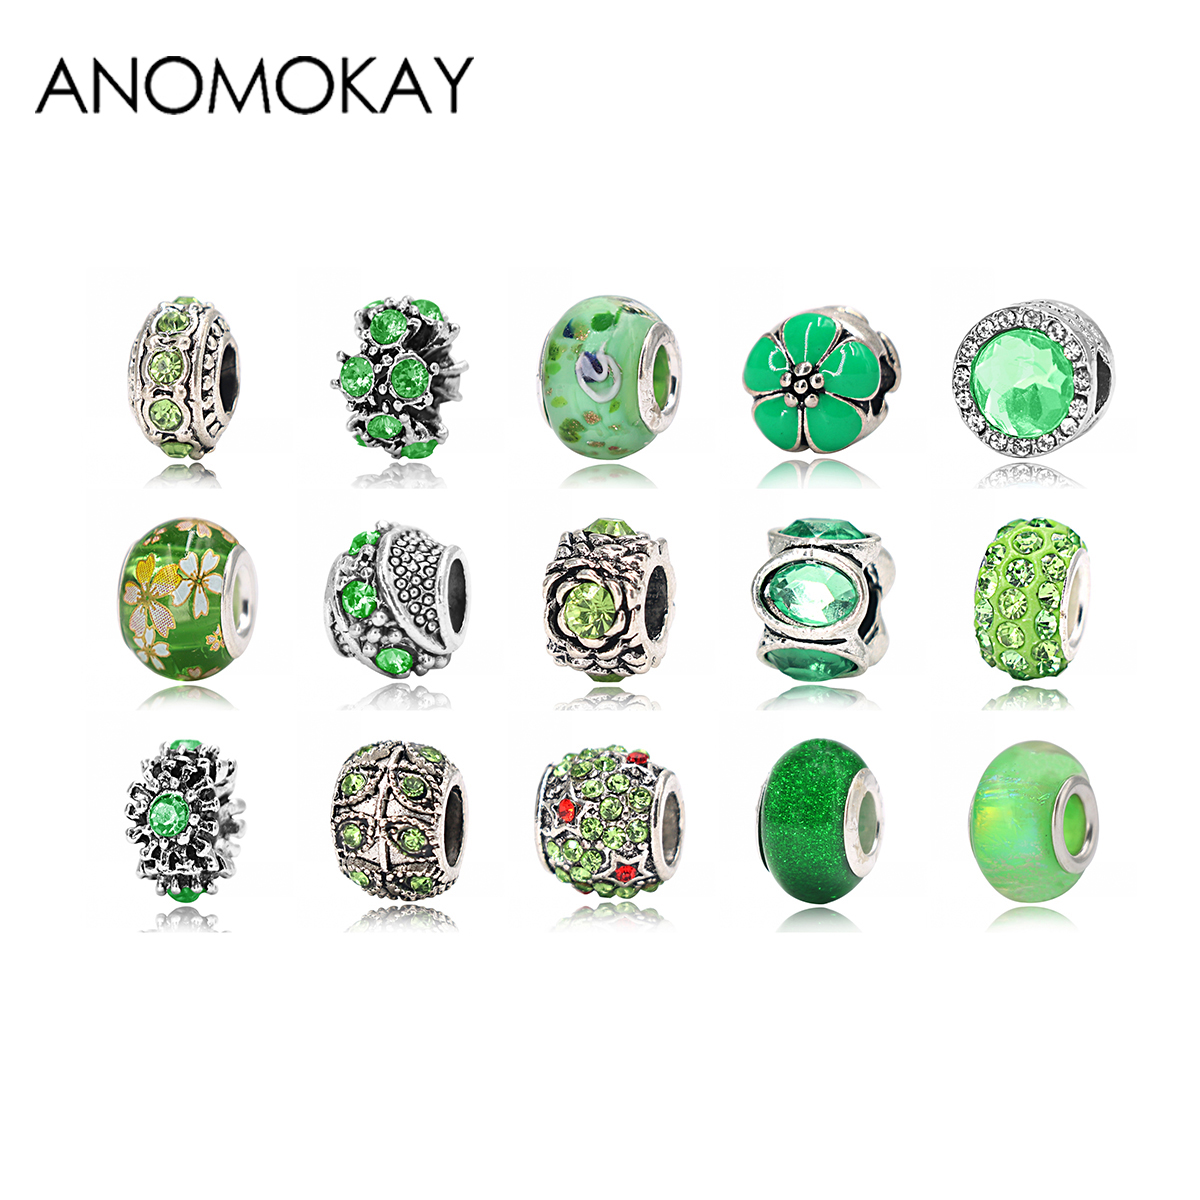 ANOMOKAY 2PCS/LOT Green Style Crystal Enamal Bead fit Pandora Bracelet Leaf Charms for DIY Jewelry Marking for Women Gift ...